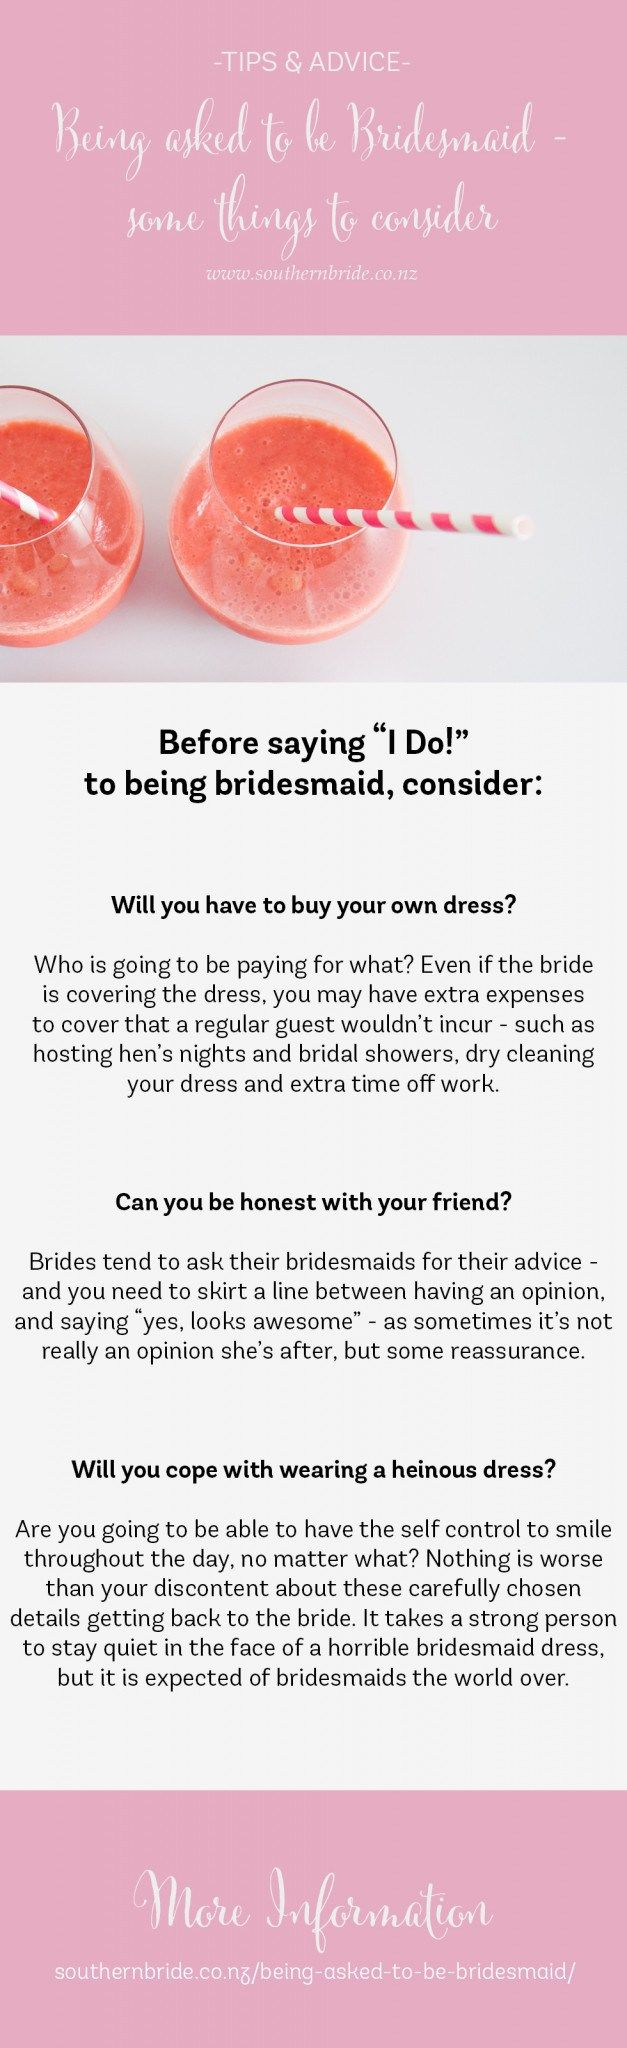 311 best bridesmaids images on pinterest southern bride summer being asked to be bridesmaid things to consider ombrellifo Image collections